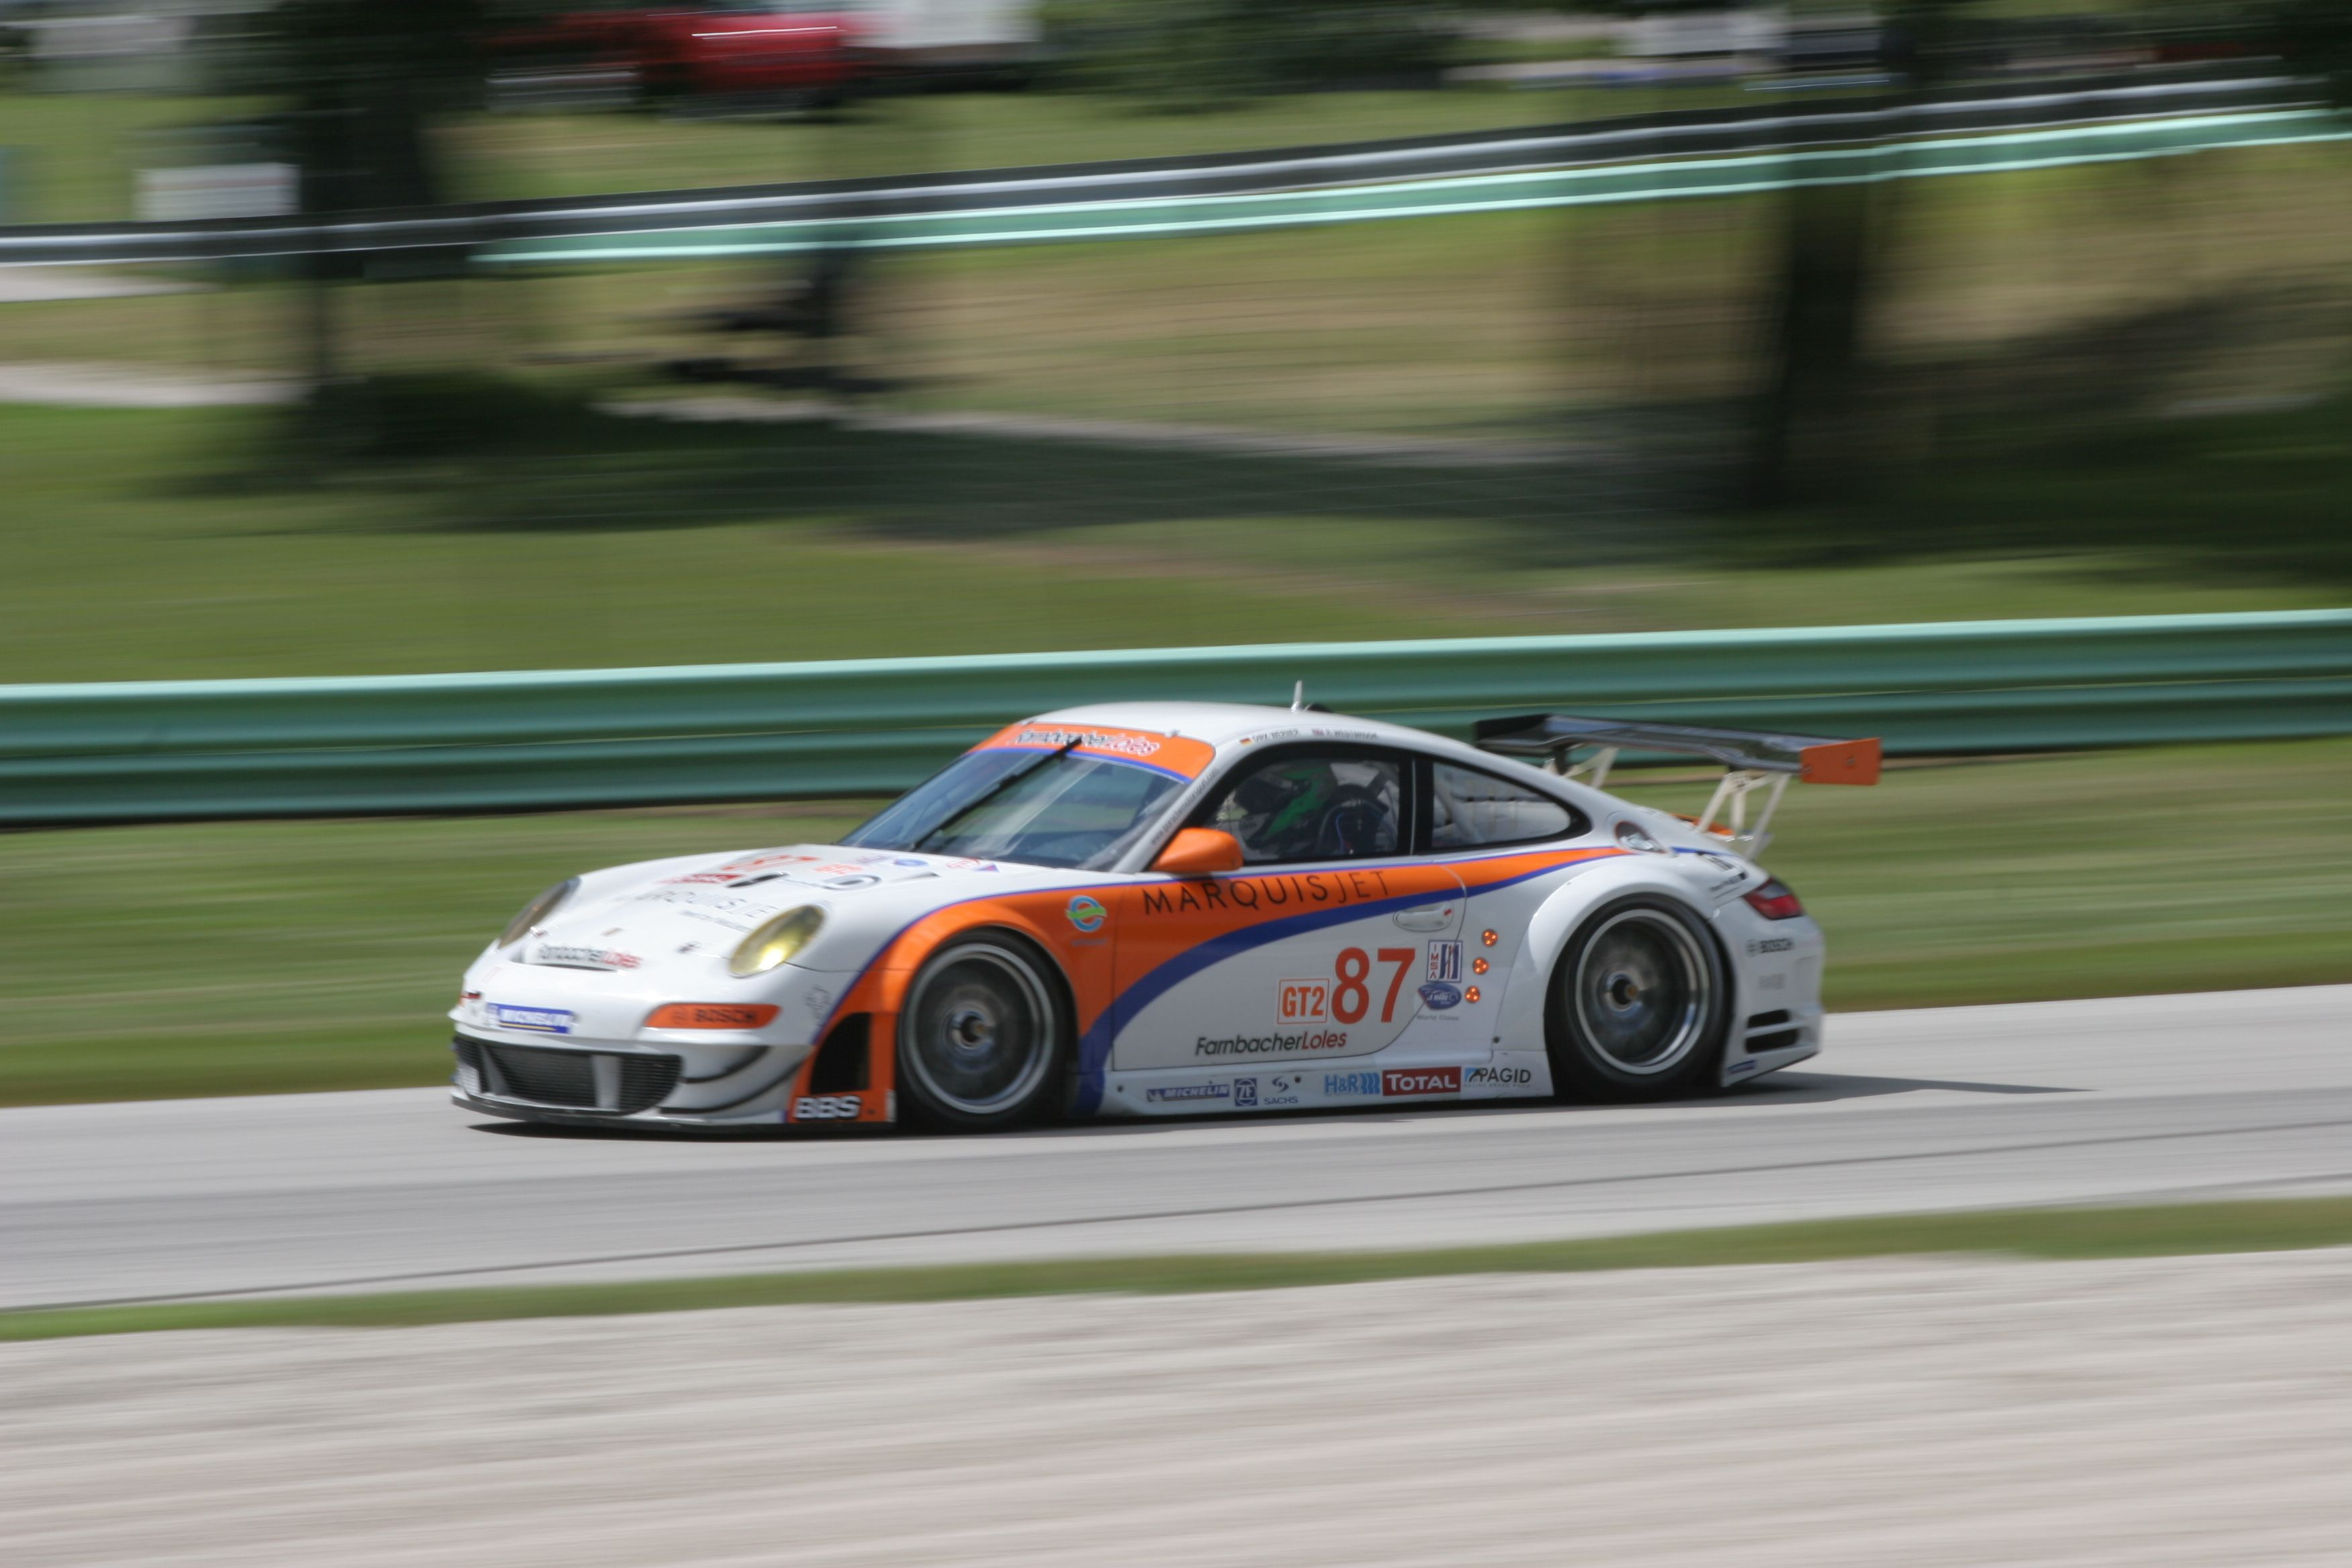 Dirk Werner (Germany) / Richard Westbrook (England), Farnbacher Loles Motorsports Porsche GT3 RSR, ALMS, Road America, 7 AUG 2008 (Photo by Ken Novak)